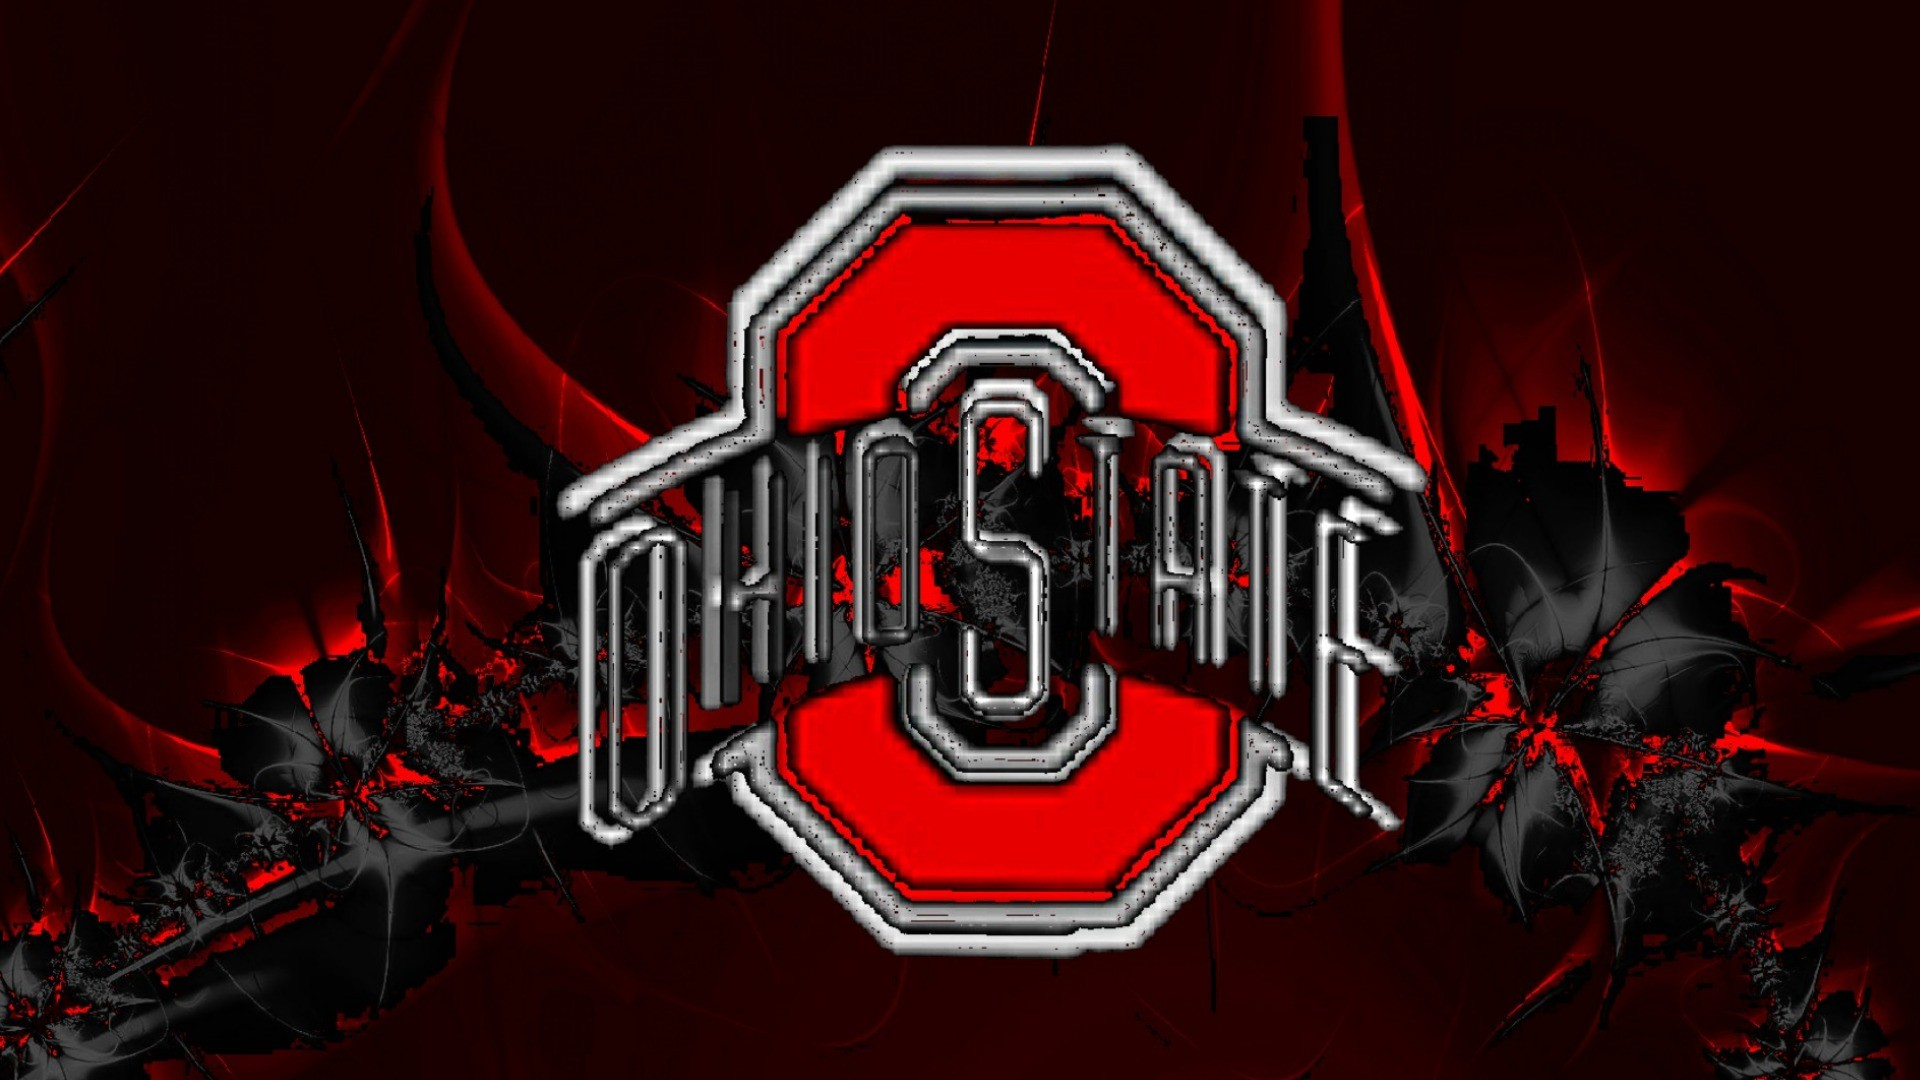 Ohio State Football Background Wallpaper | HD Wallpapers | Pinterest | Hd  wallpaper and Wallpaper